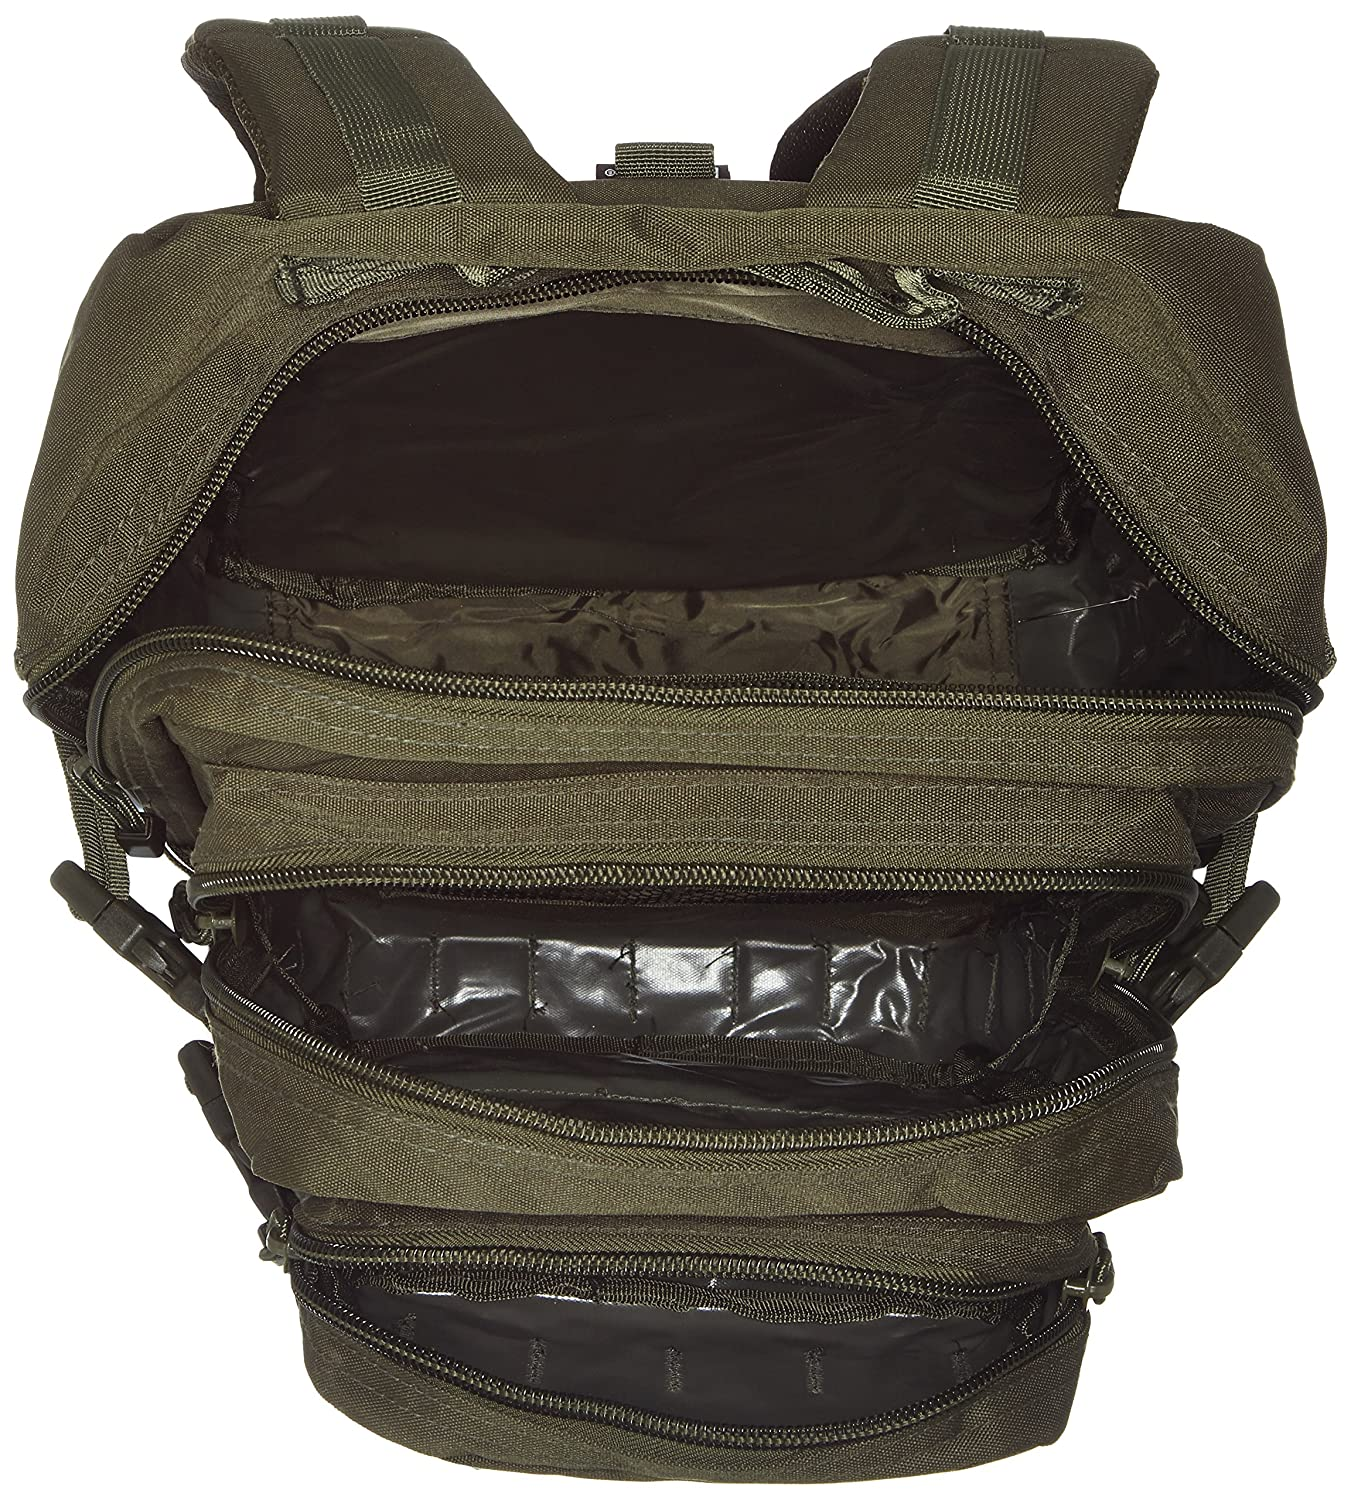 Amazon.com : Mil-Tec Military Army Patrol Molle Assault Pack Tactical Combat Rucksack Backpack Bag 36L Olive Green : Tactical Bag : Sports & Outdoors